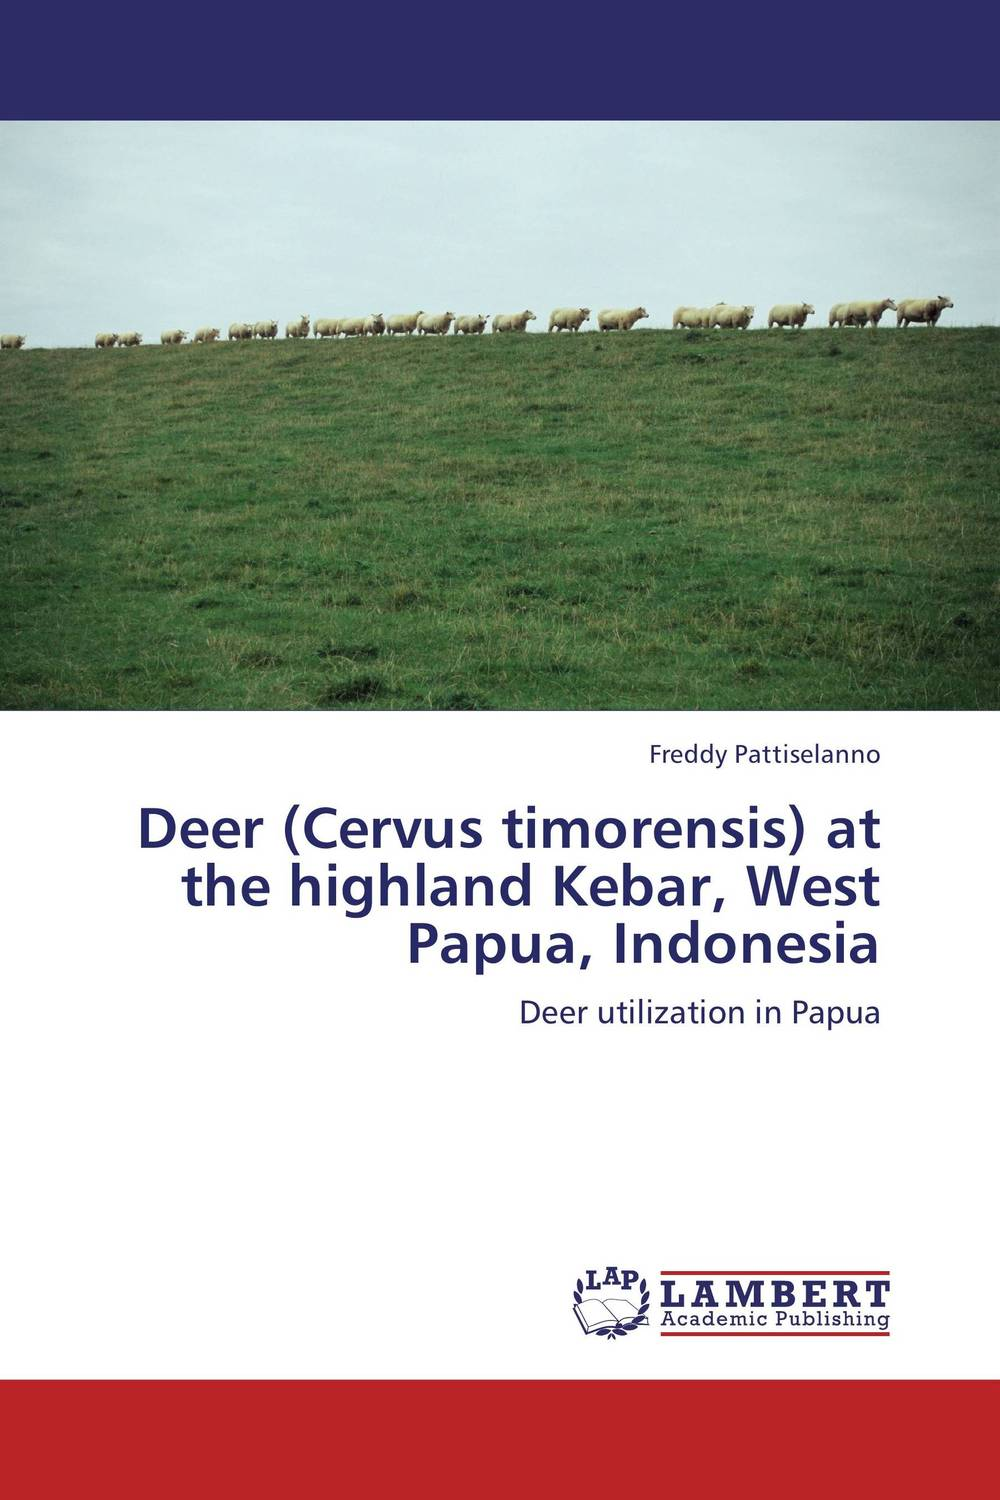 Deer (Cervus timorensis) at the highland Kebar, West Papua, Indonesia елочное украшение сова на веточке 9 10 см deepot